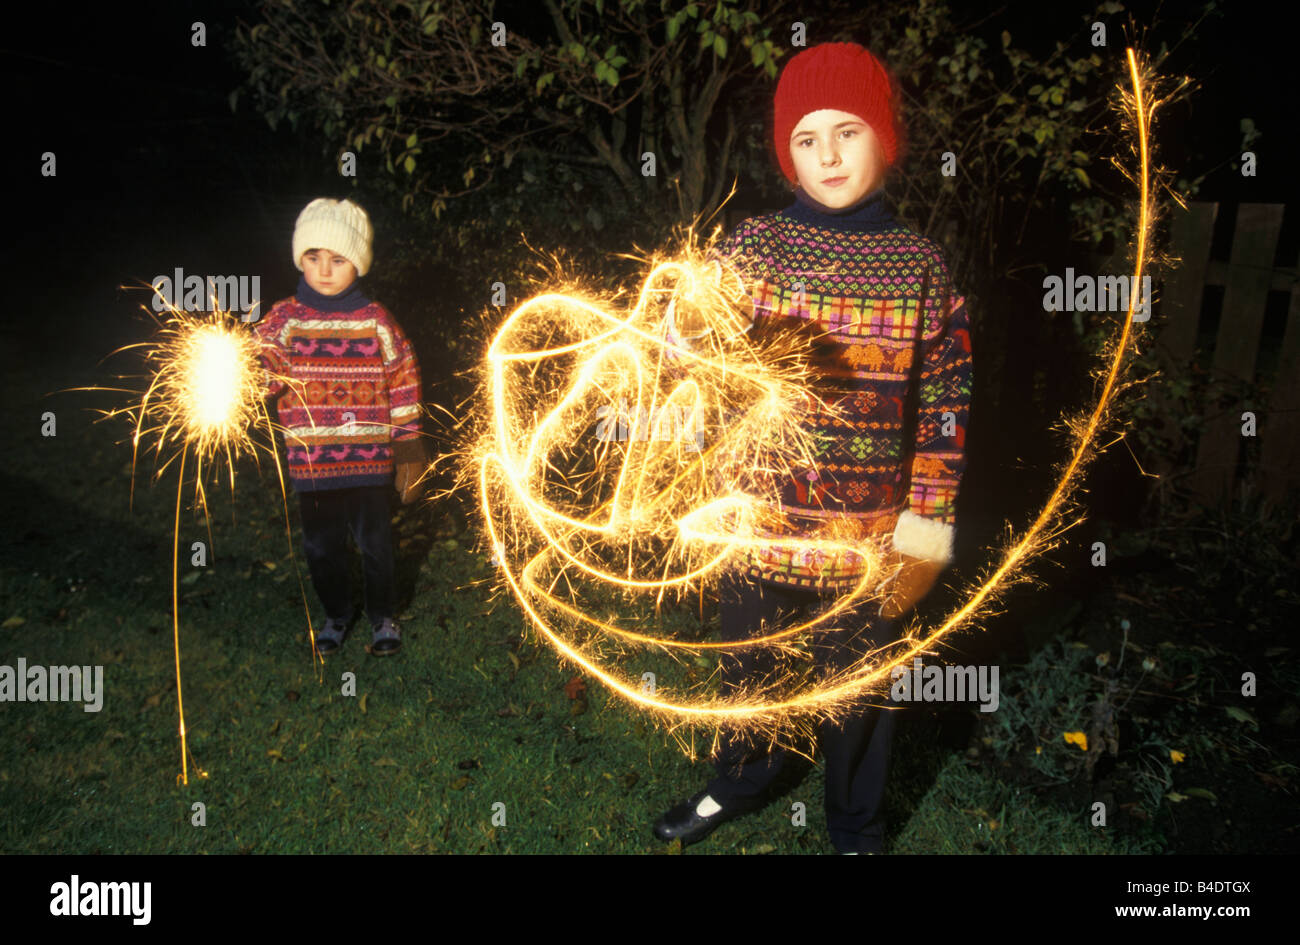 2 girls playing with sparklers on bonfire night - Stock Image